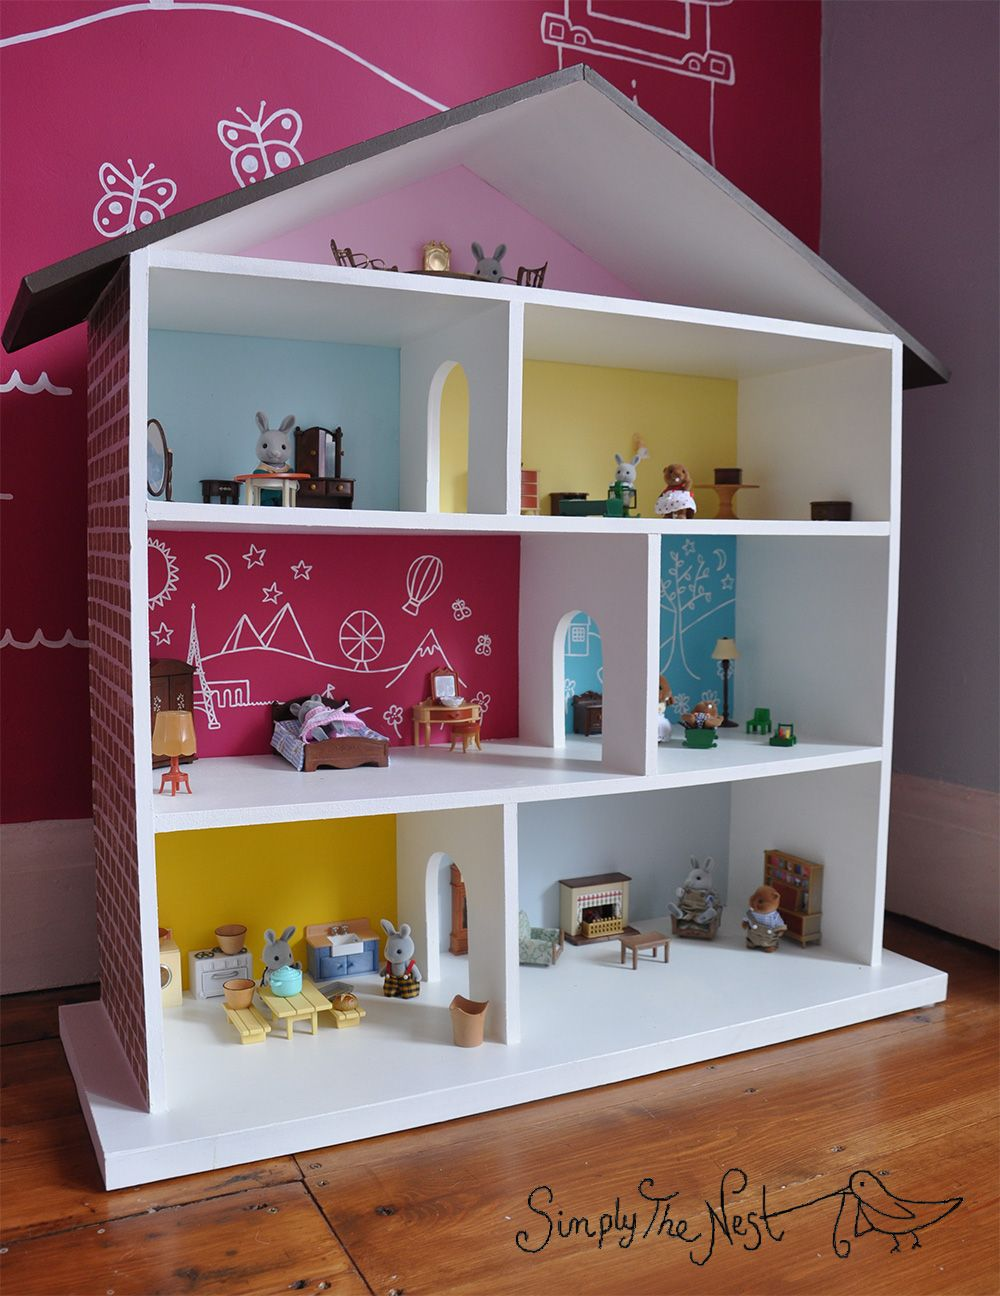 homemade doll furniture. Diy Doll Furniture. A Dollhouse Project By Simply The Nest - Uk Renovation Blog Homemade Furniture P